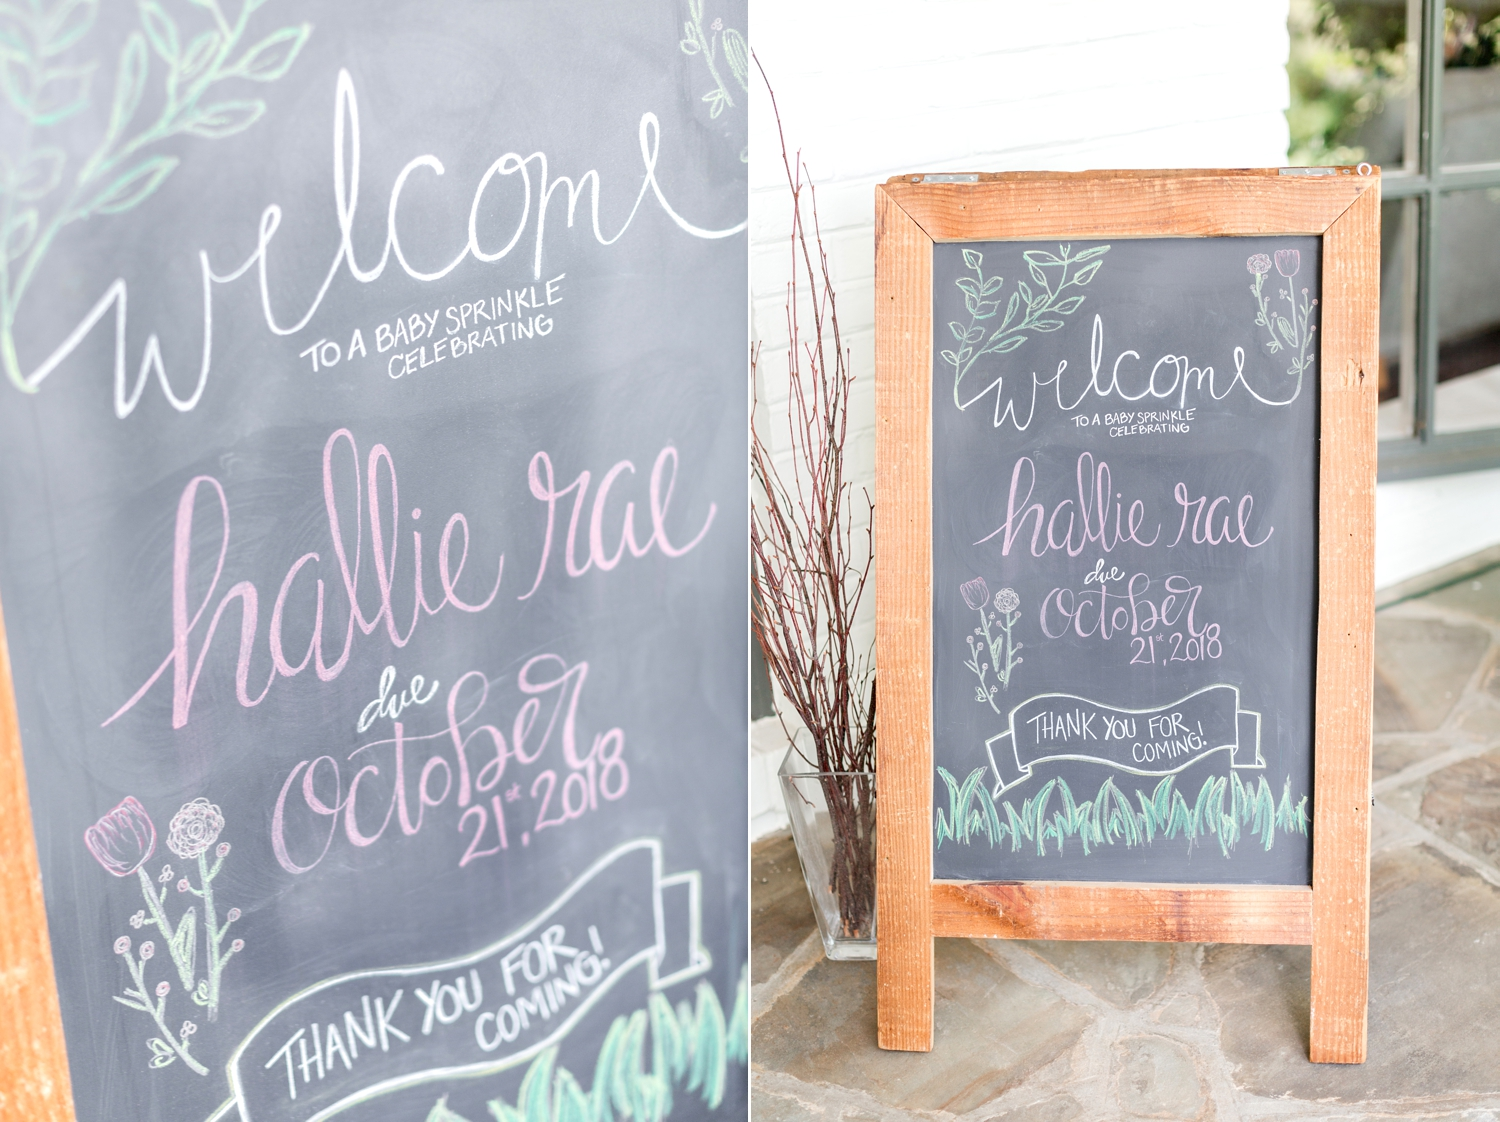 Kate, you are so talented with your calligraphy! Love this sign!